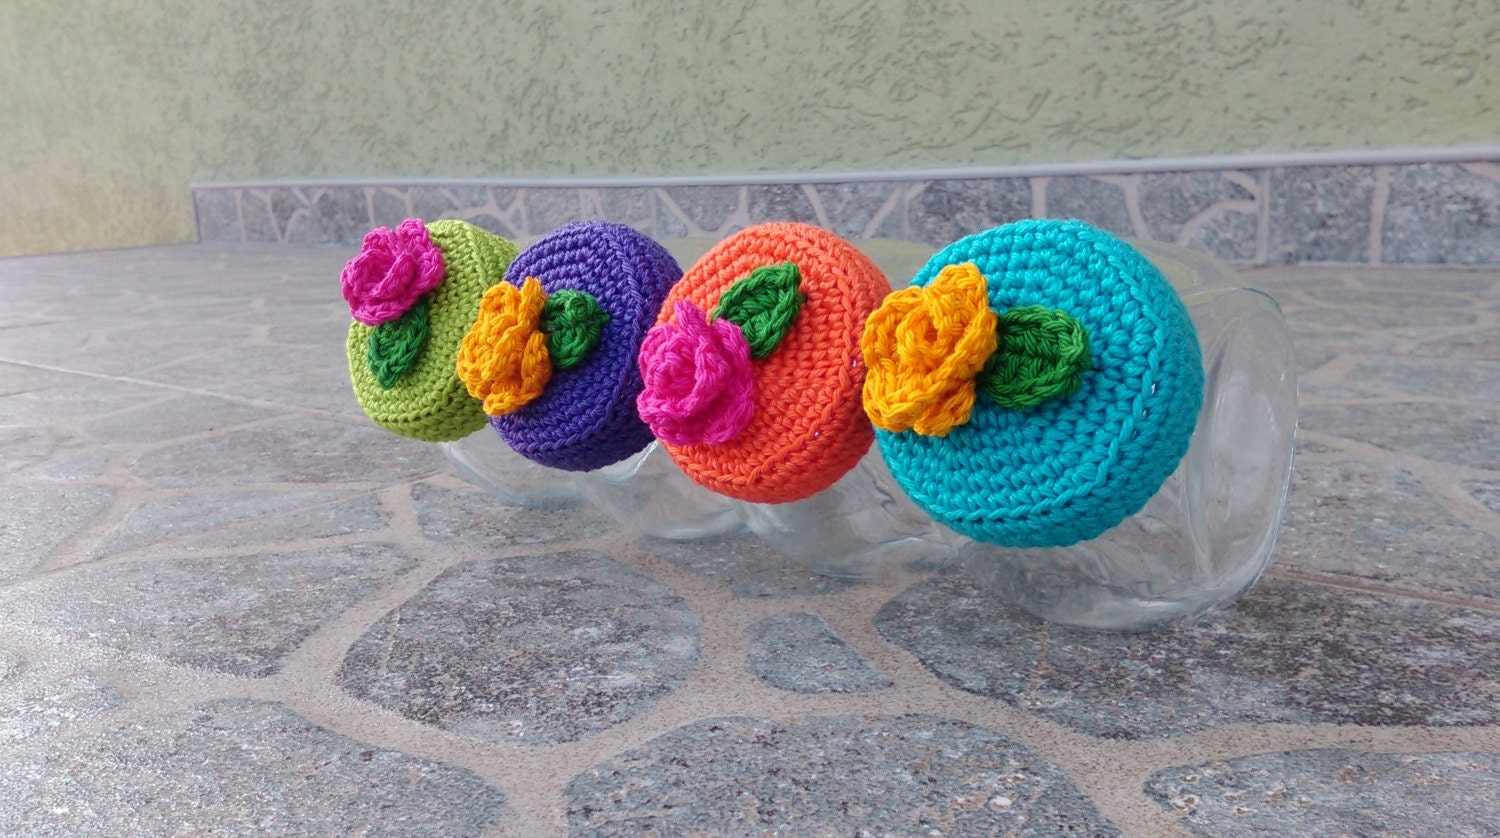 Crochet jar lid covers PATTERN IKEA by CrochetCookies on Etsy